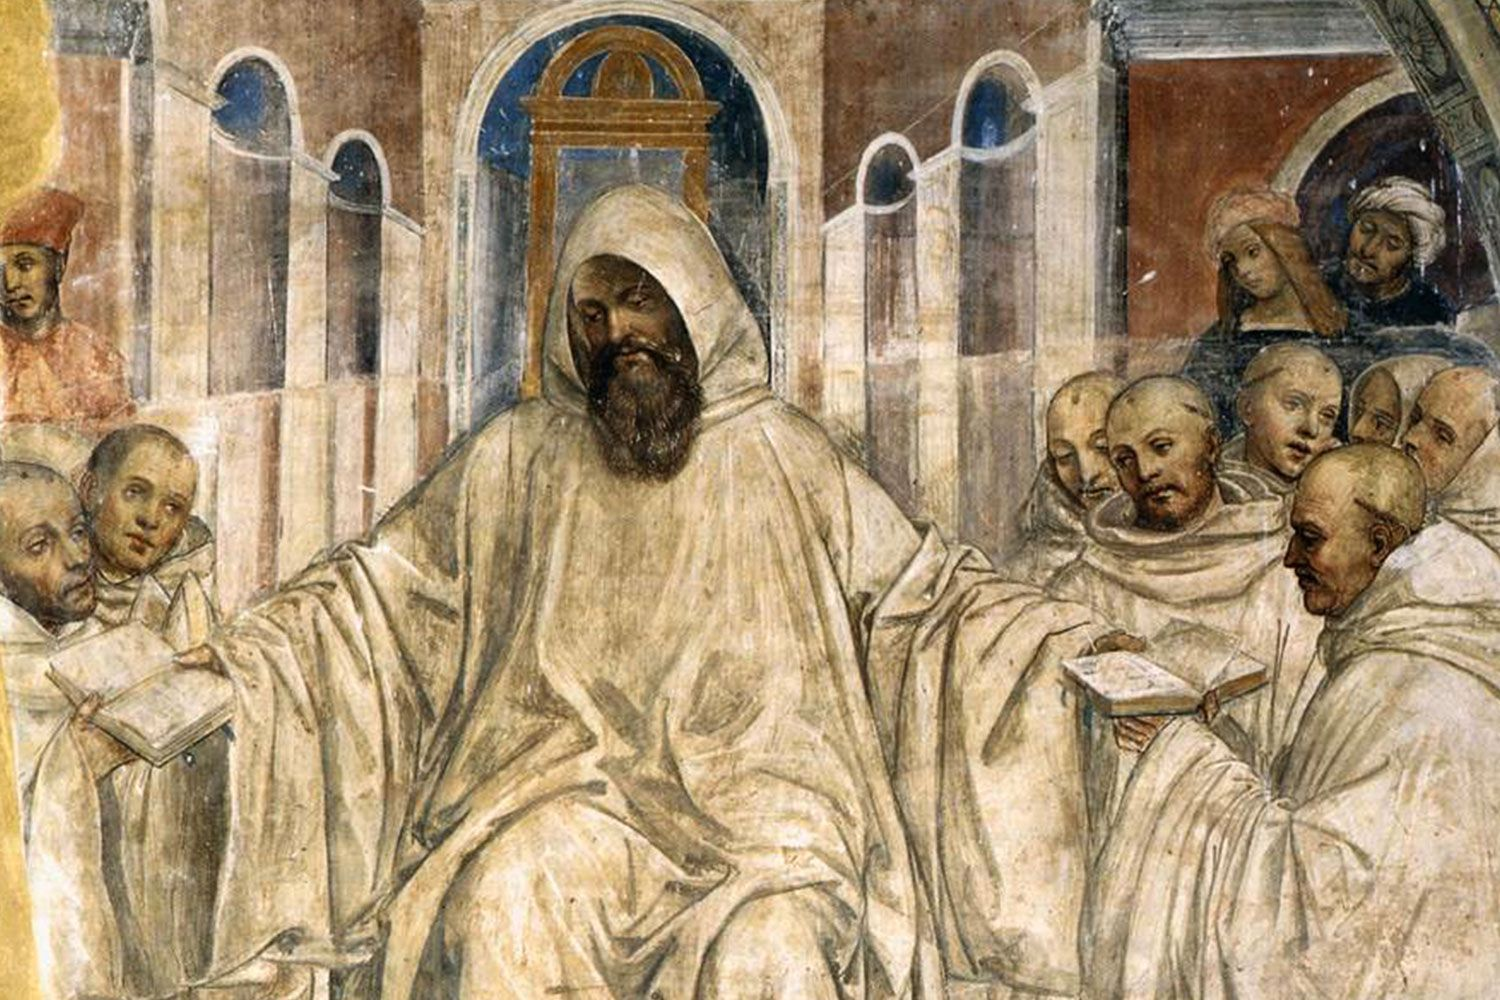 Sodoma's fresco Benedict Presents the Olivetan Monks with His Rule (1505-08). Located in the main cloister of the Abbey Monteoliveto Maggiore near Siena.